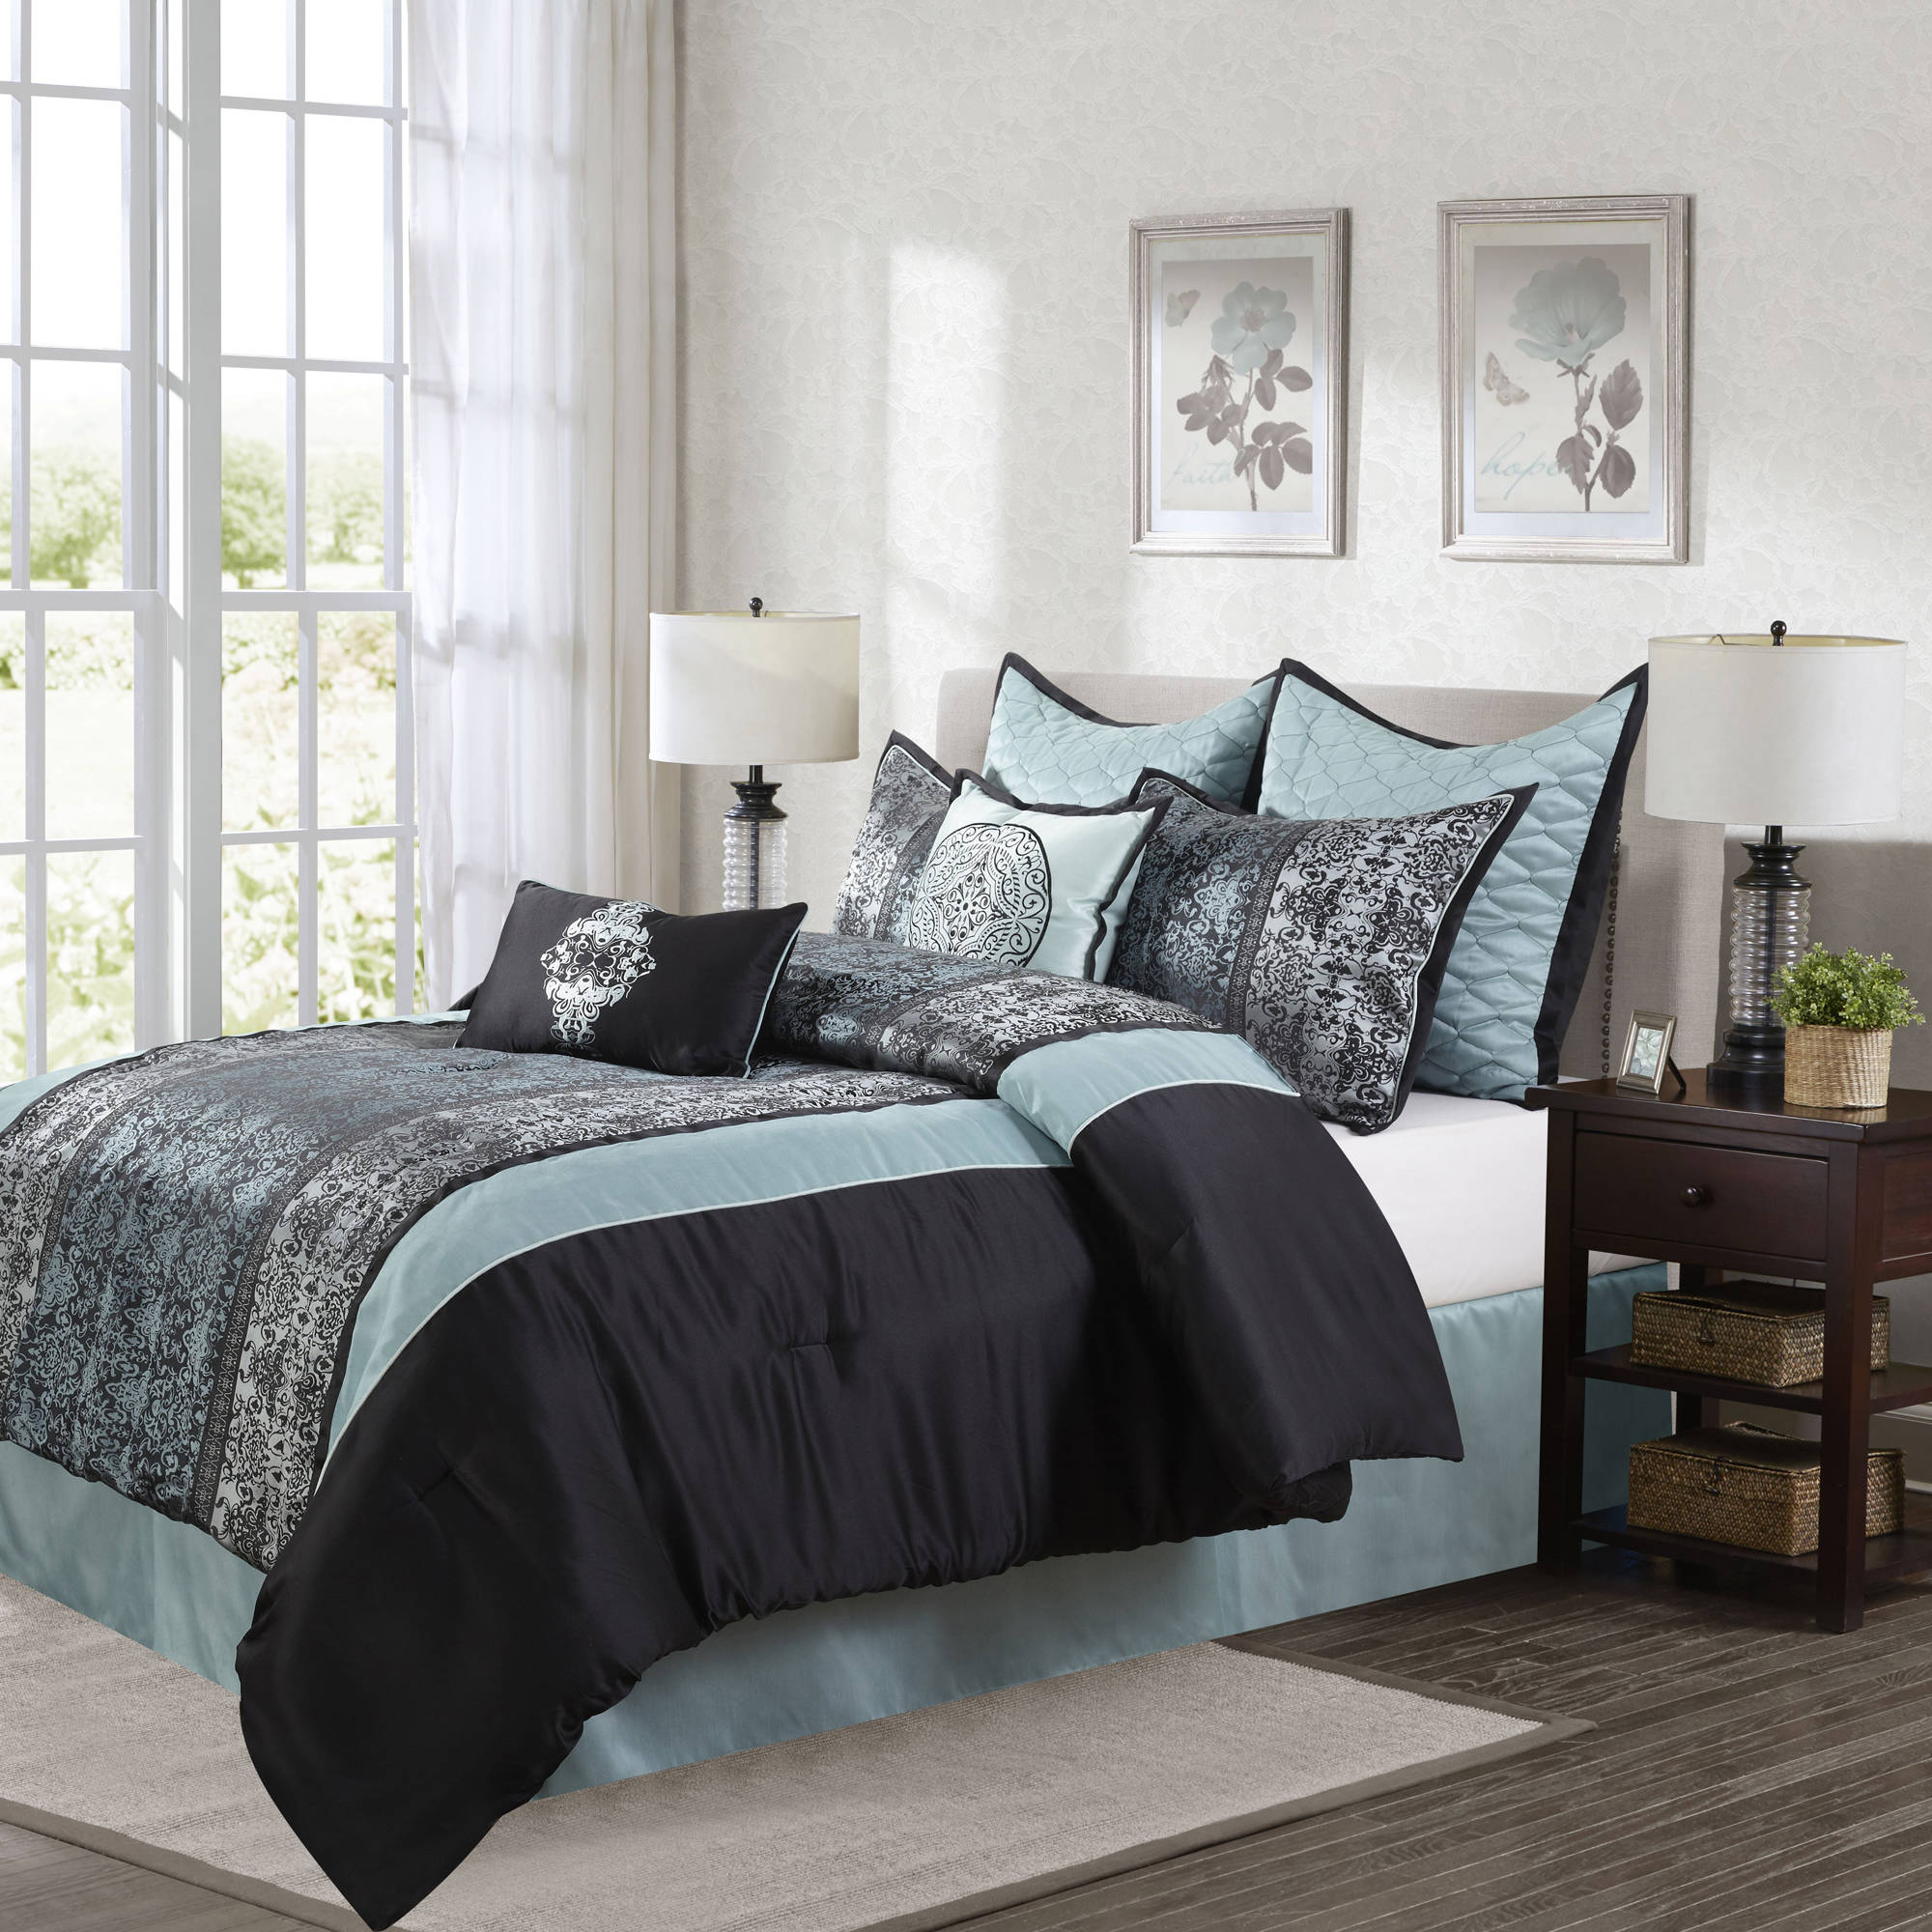 Stratford Park by Nanshing Arabesque 8-Piece Bedding Comforter Set